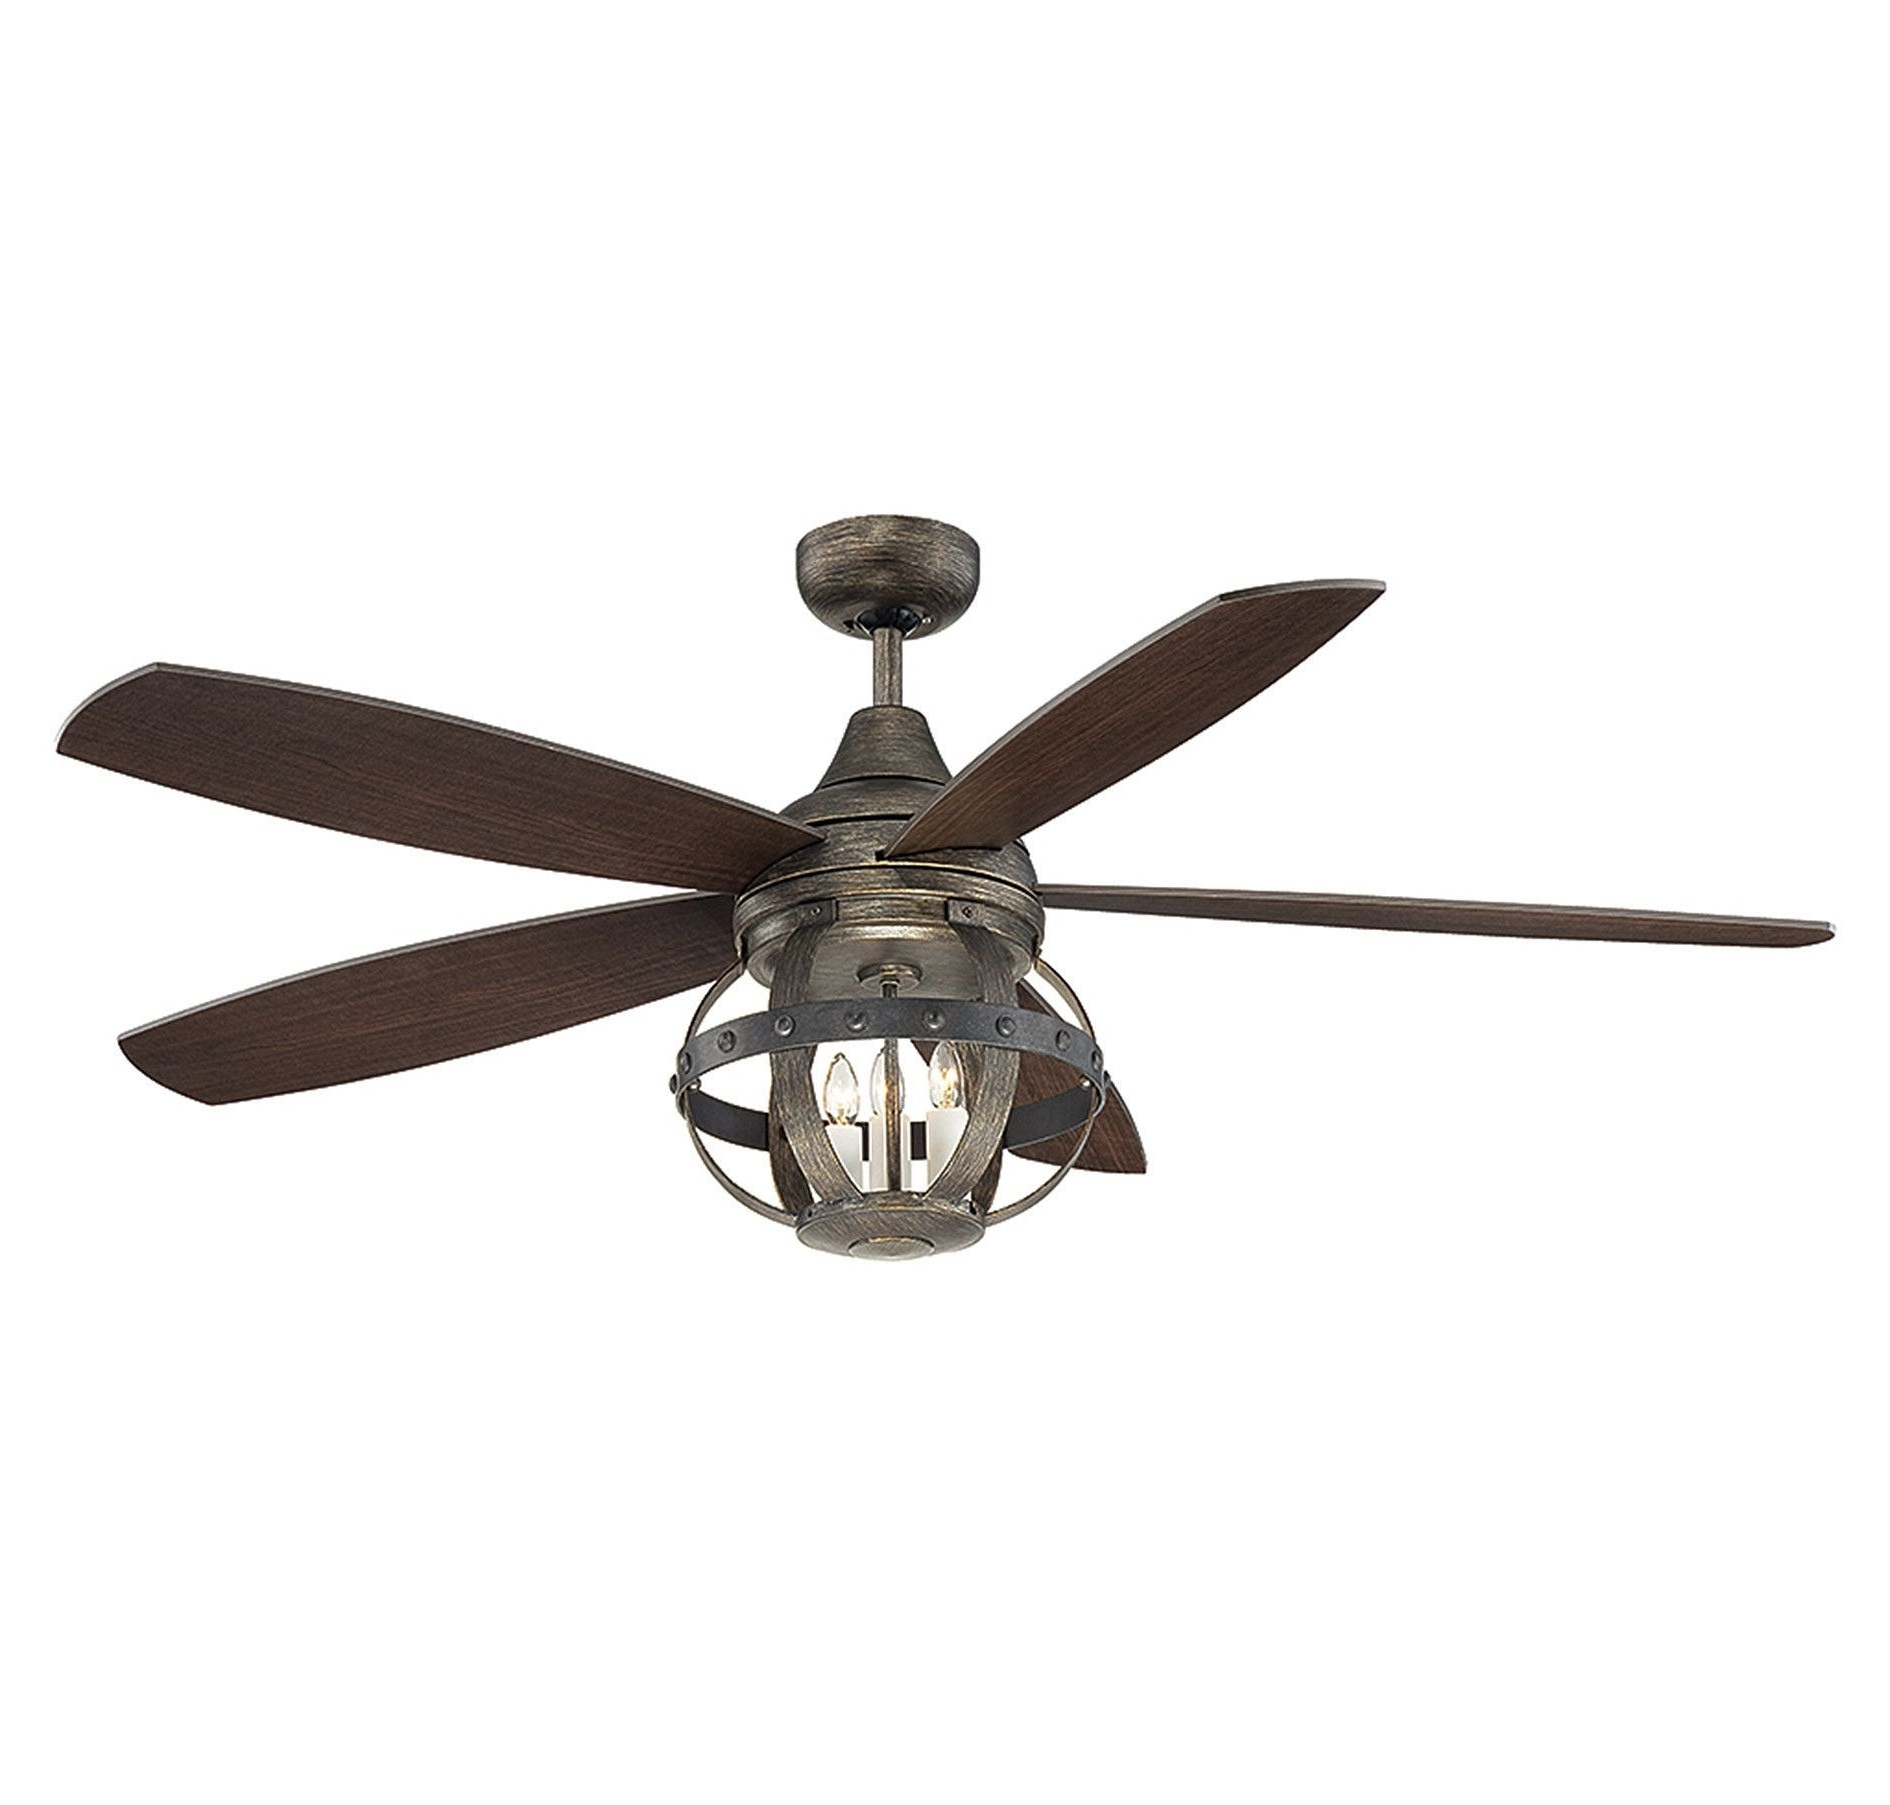 Home In Preferred Wayfair Outdoor Ceiling Fans With Lights (Gallery 4 of 20)